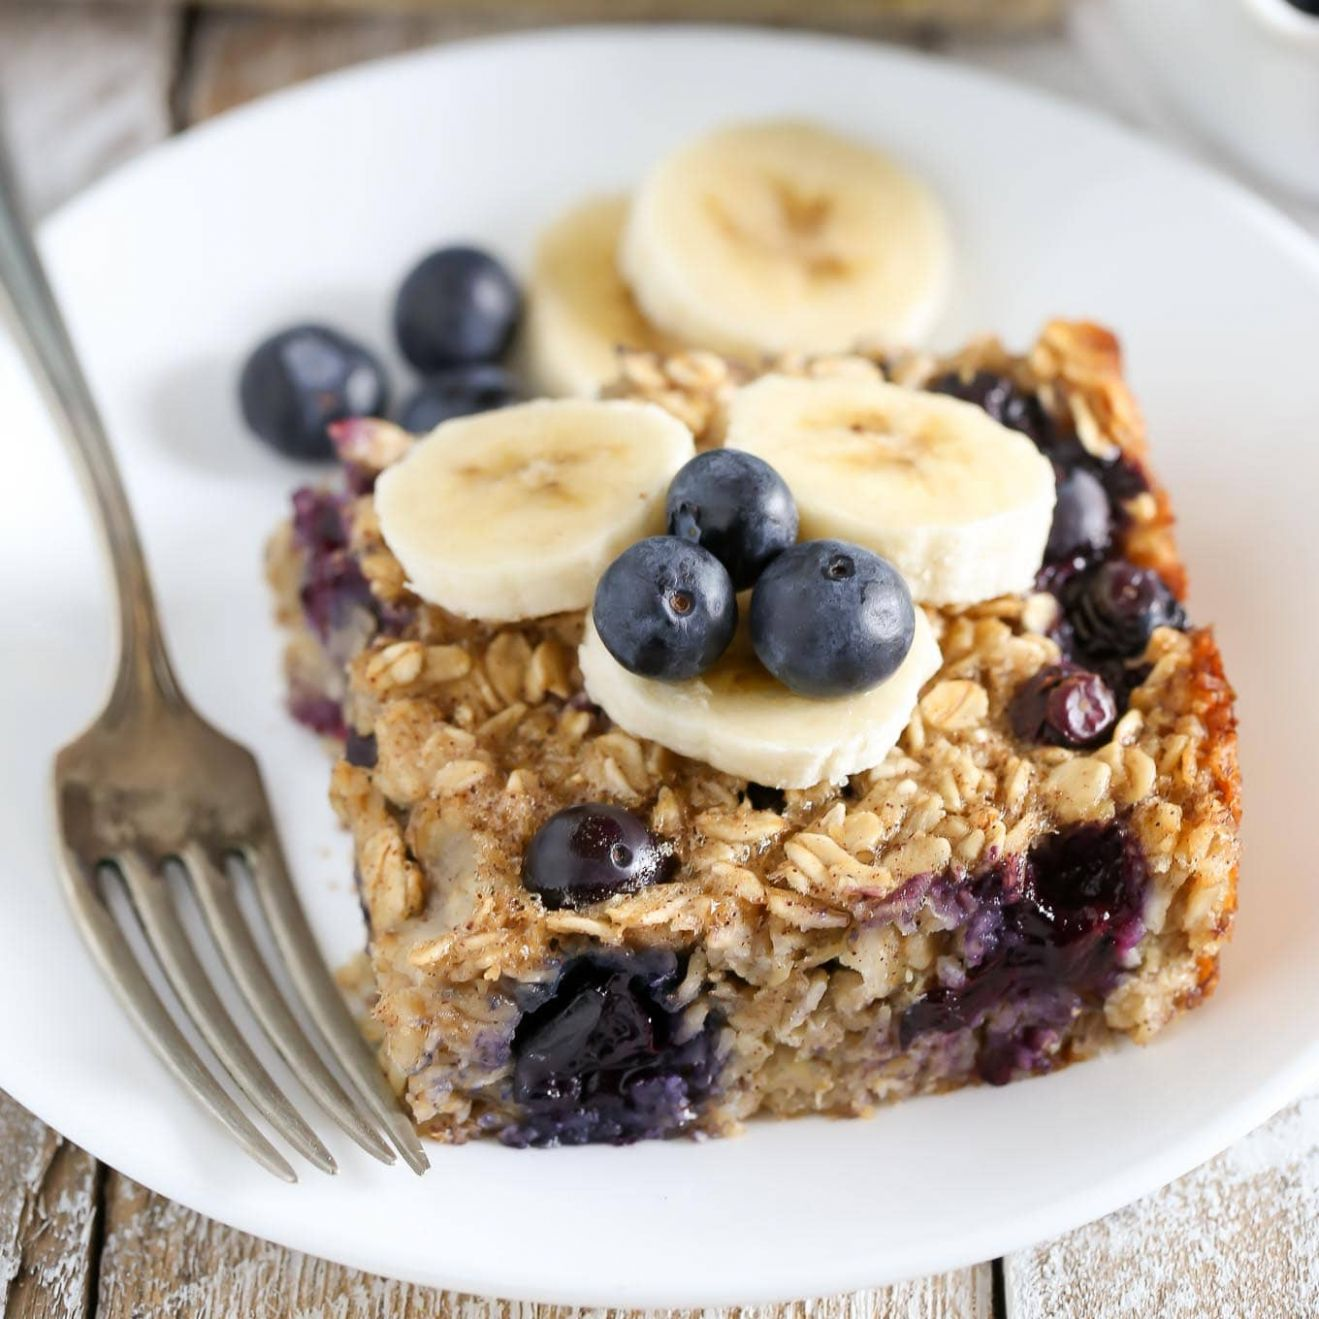 Blueberry Banana Baked Oatmeal - Breakfast Recipes With Bananas